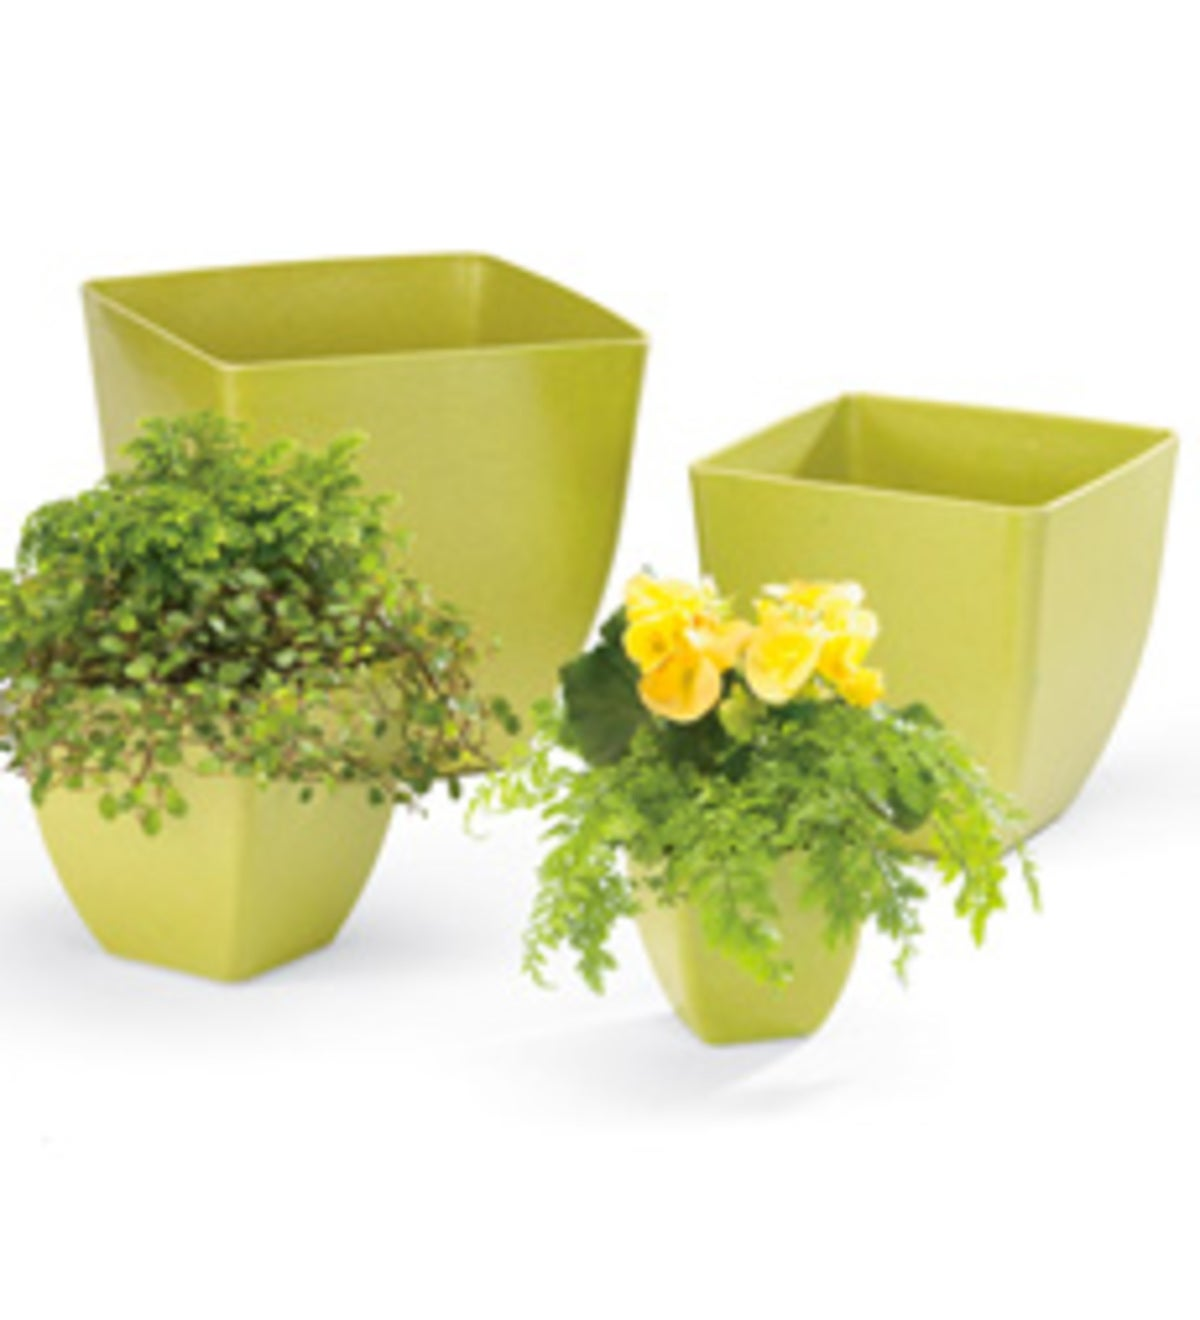 Bamboo Planters, set of 4